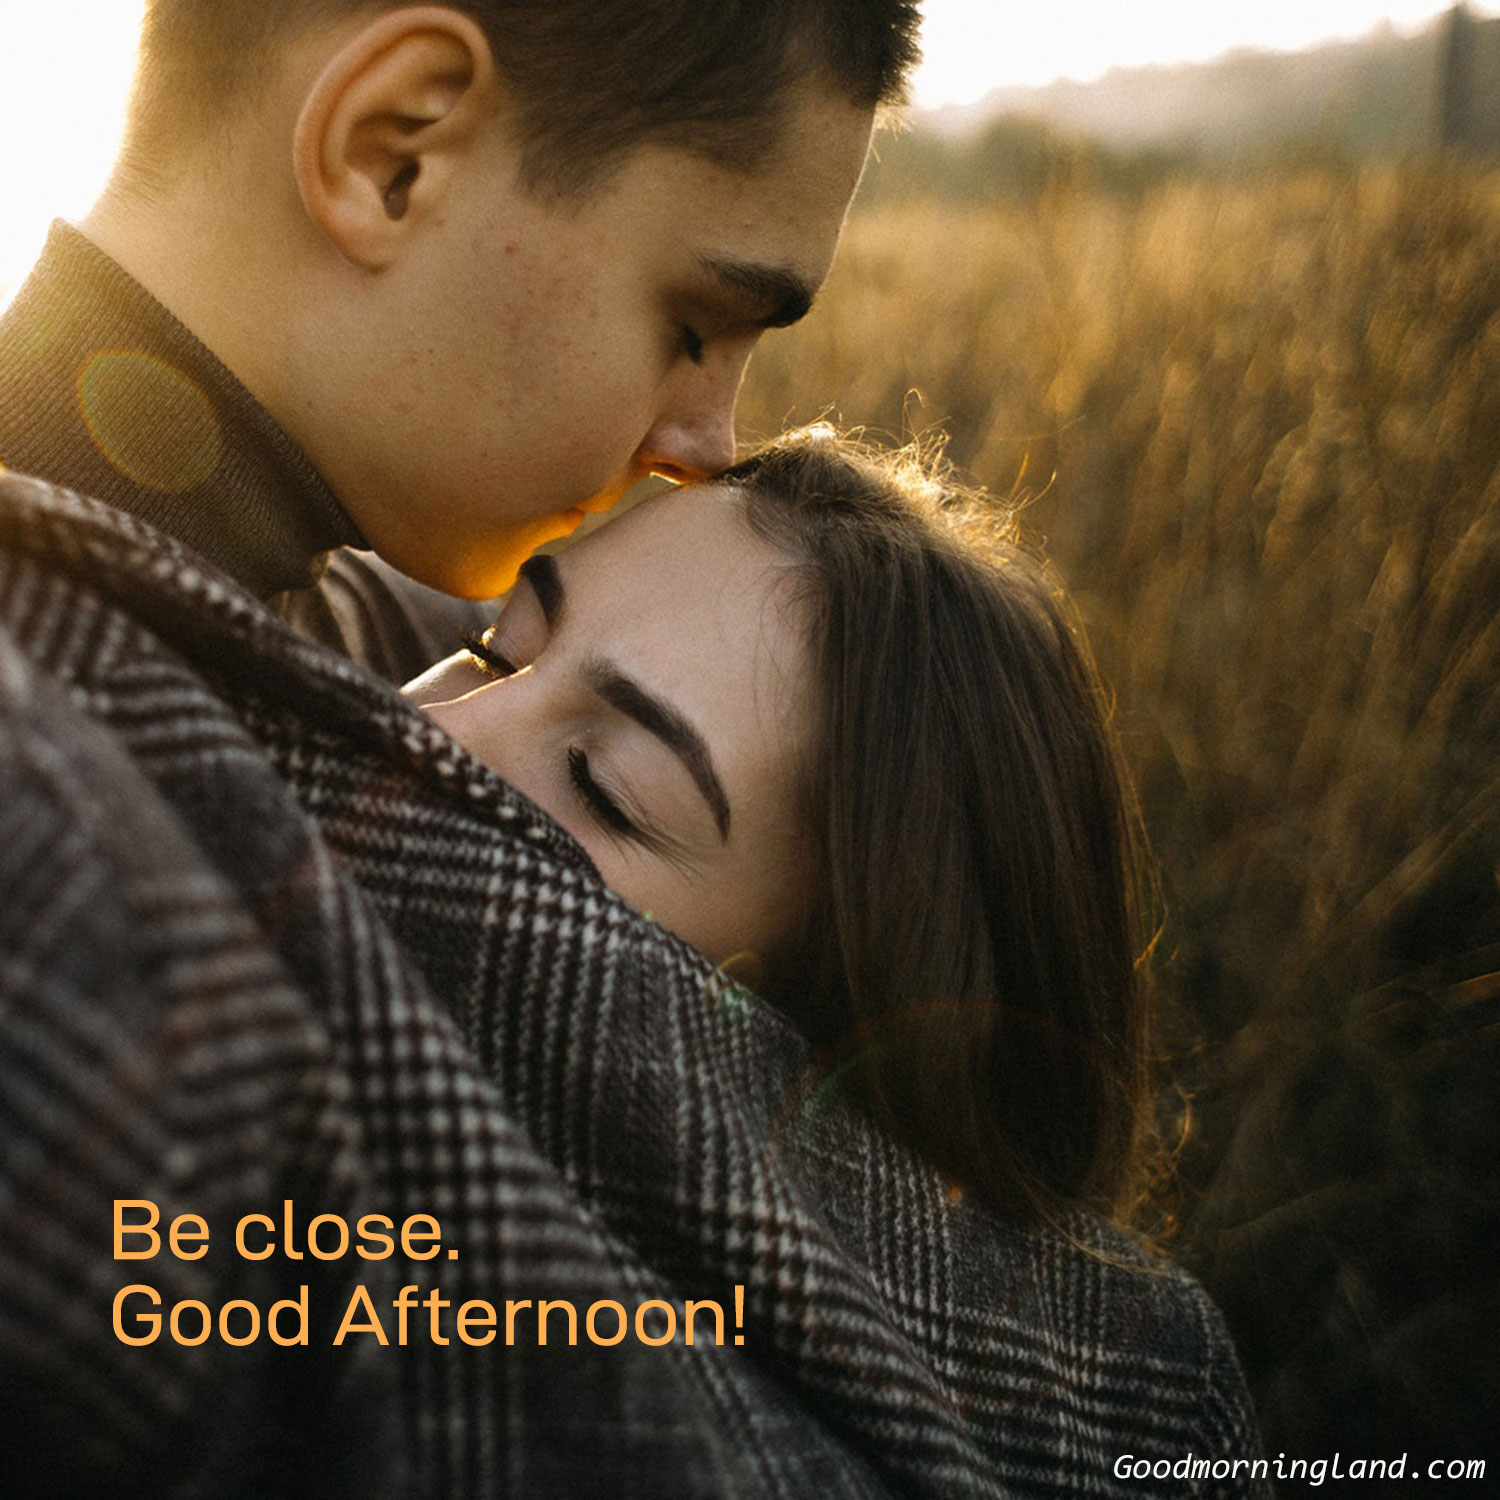 Good Afternoon Images For Your Love Good Morning Images Quotes Wishes Messages Greetings Ecards I will always love you till eternity, good afternoon my love. good afternoon images for your love